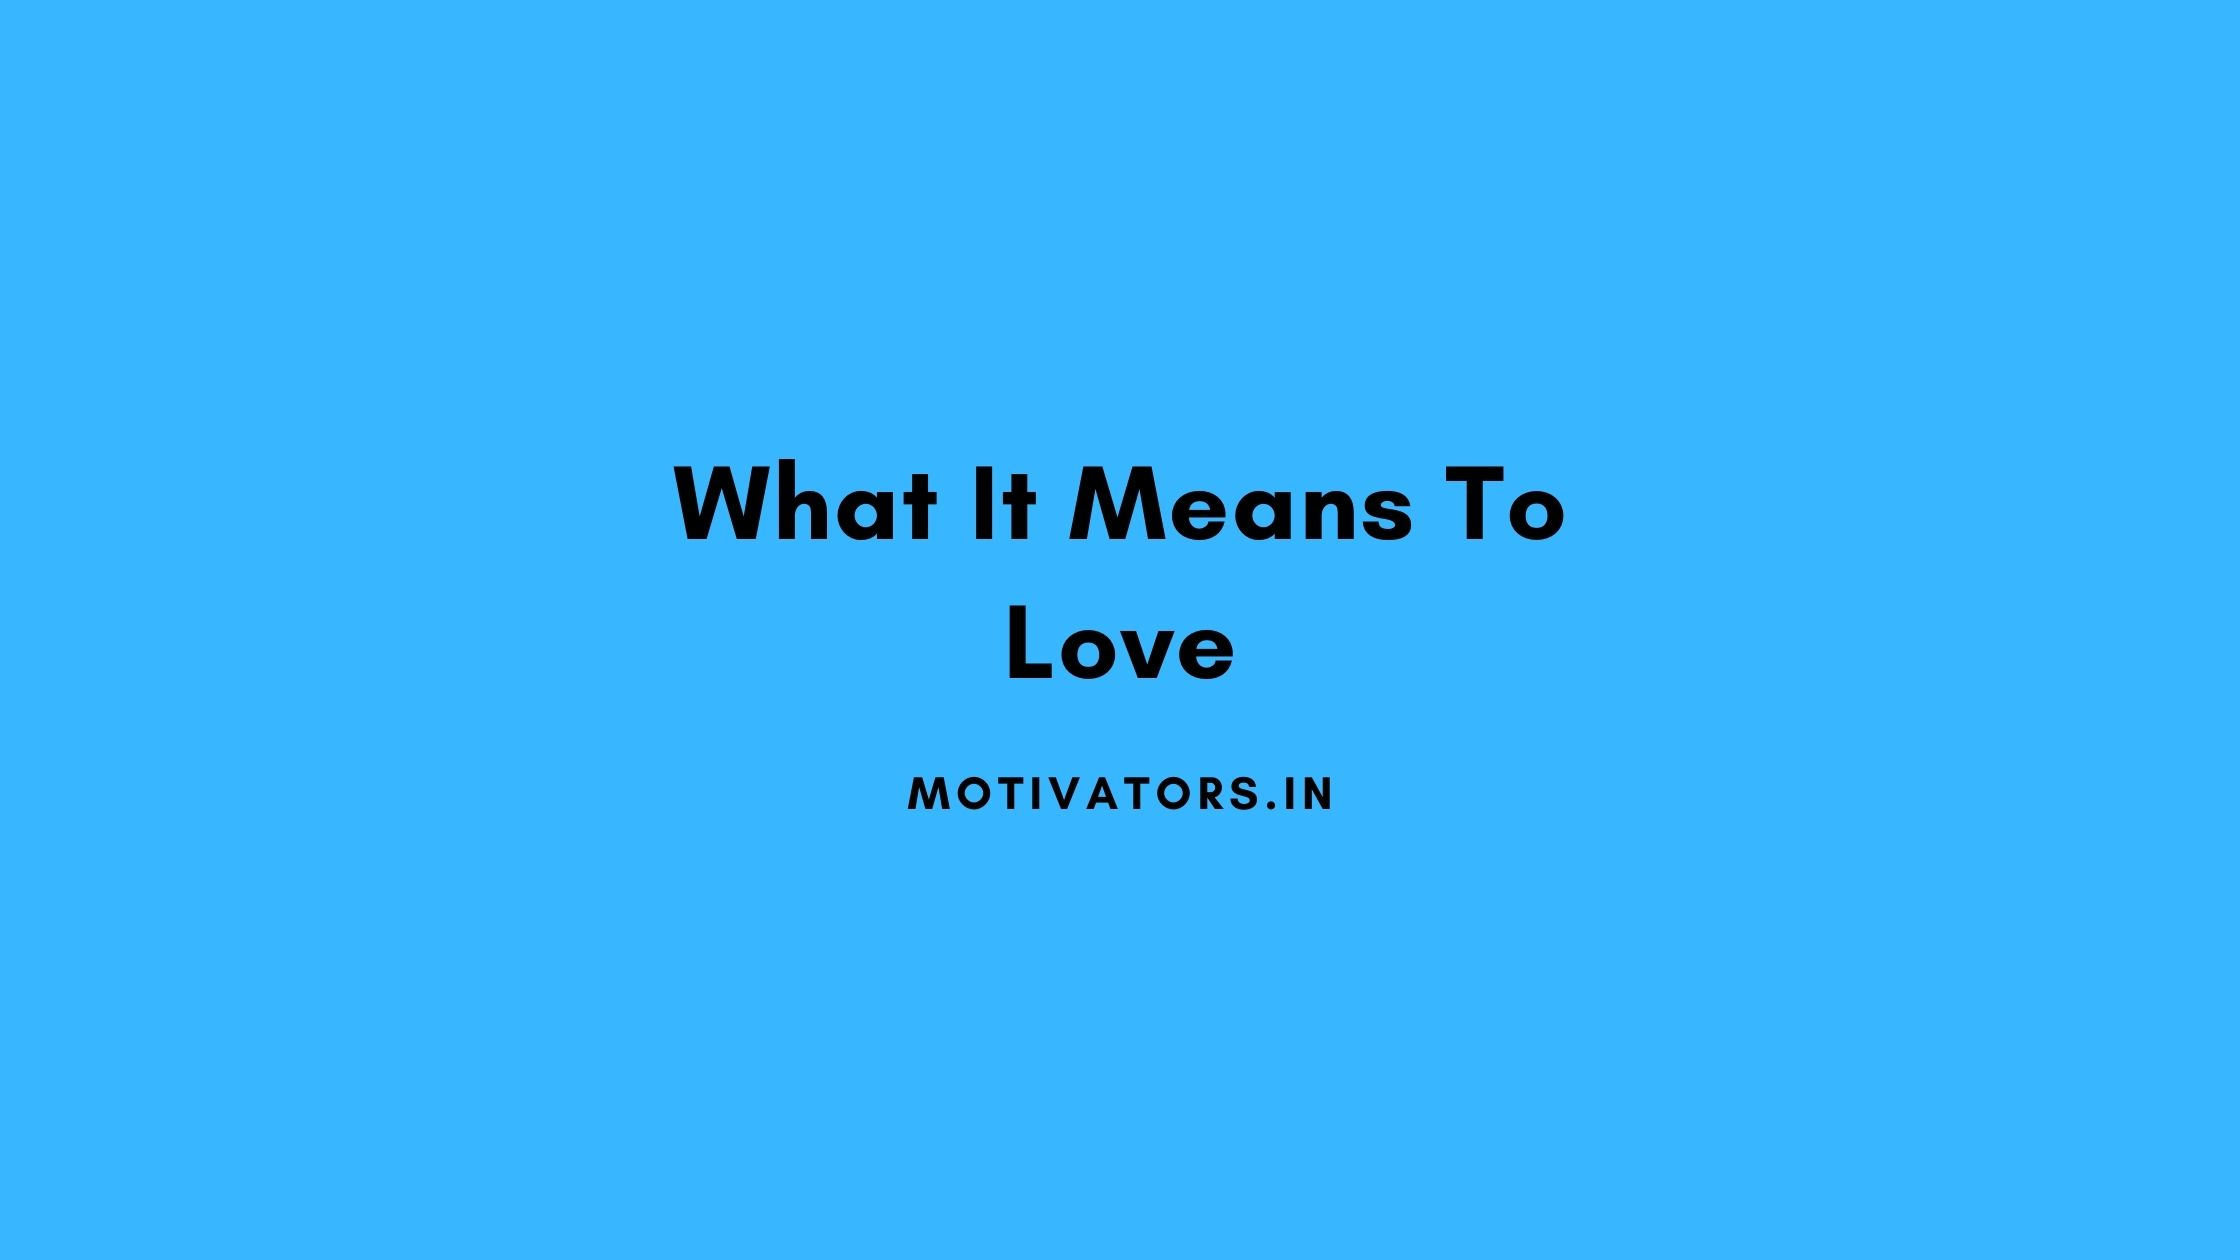 What It Means To Love